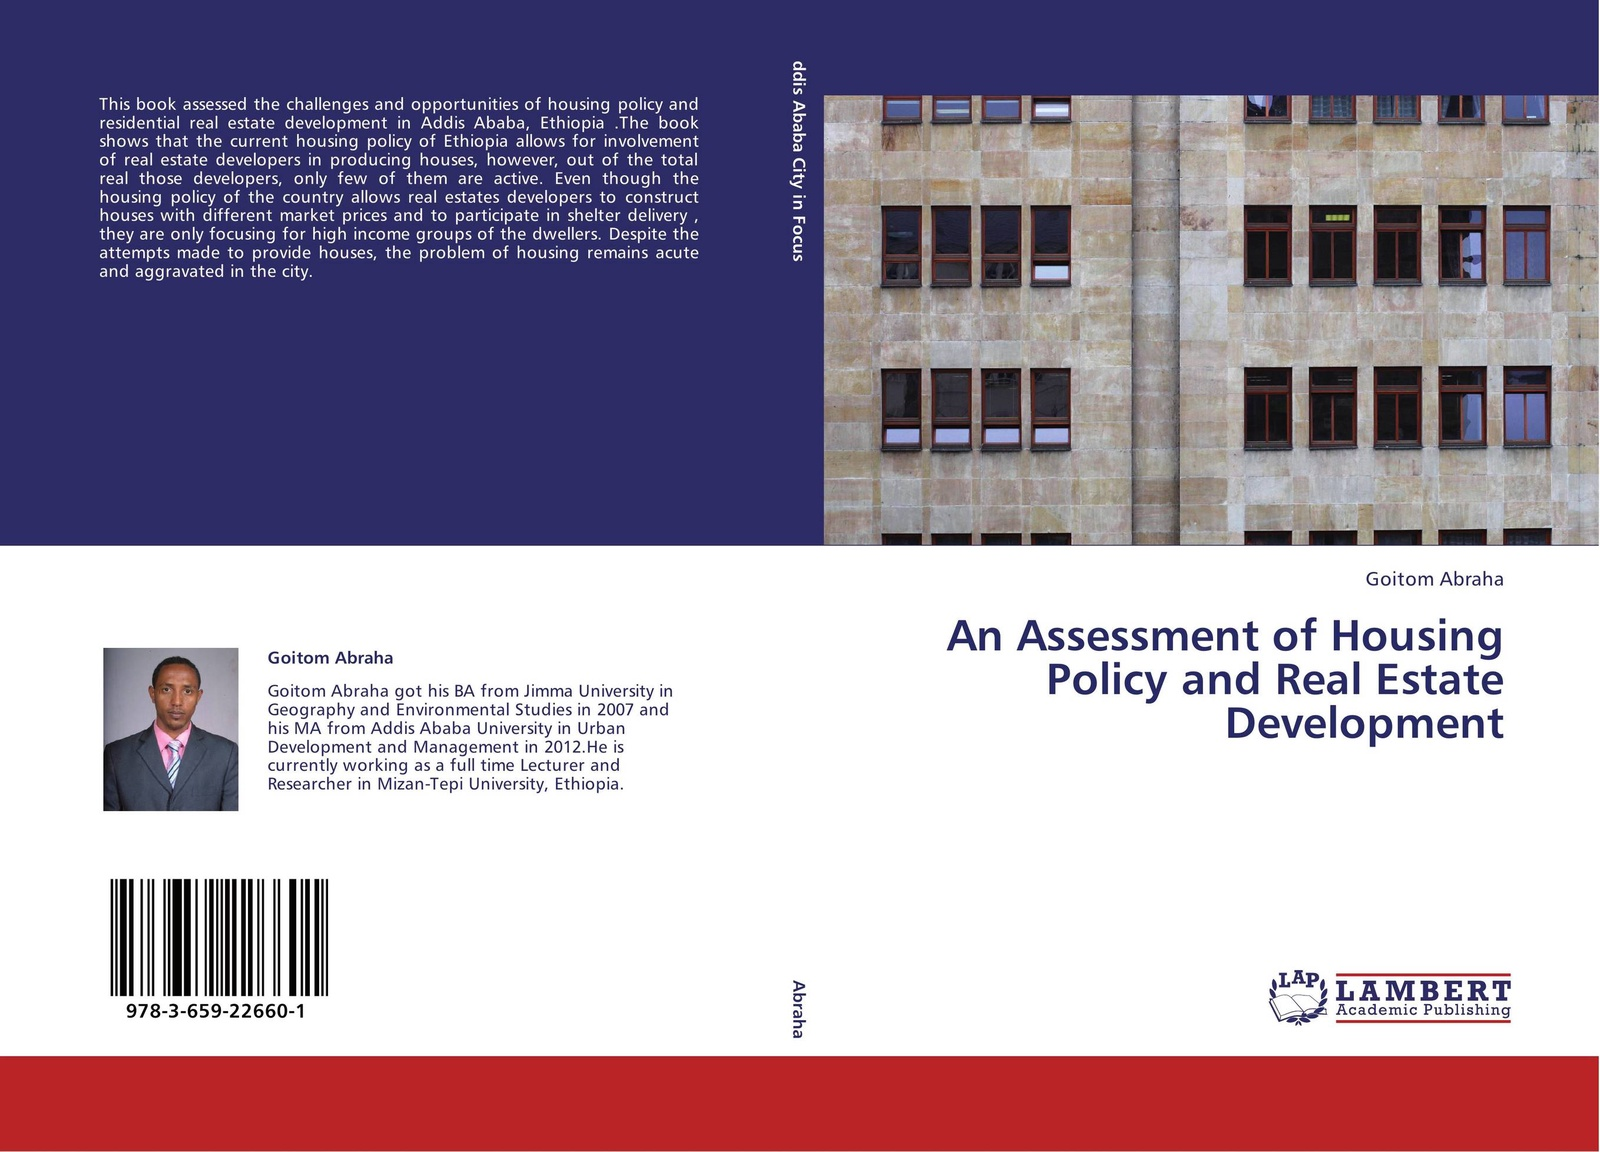 Goitom Abraha An Assessment of Housing Policy and Real Estate Development